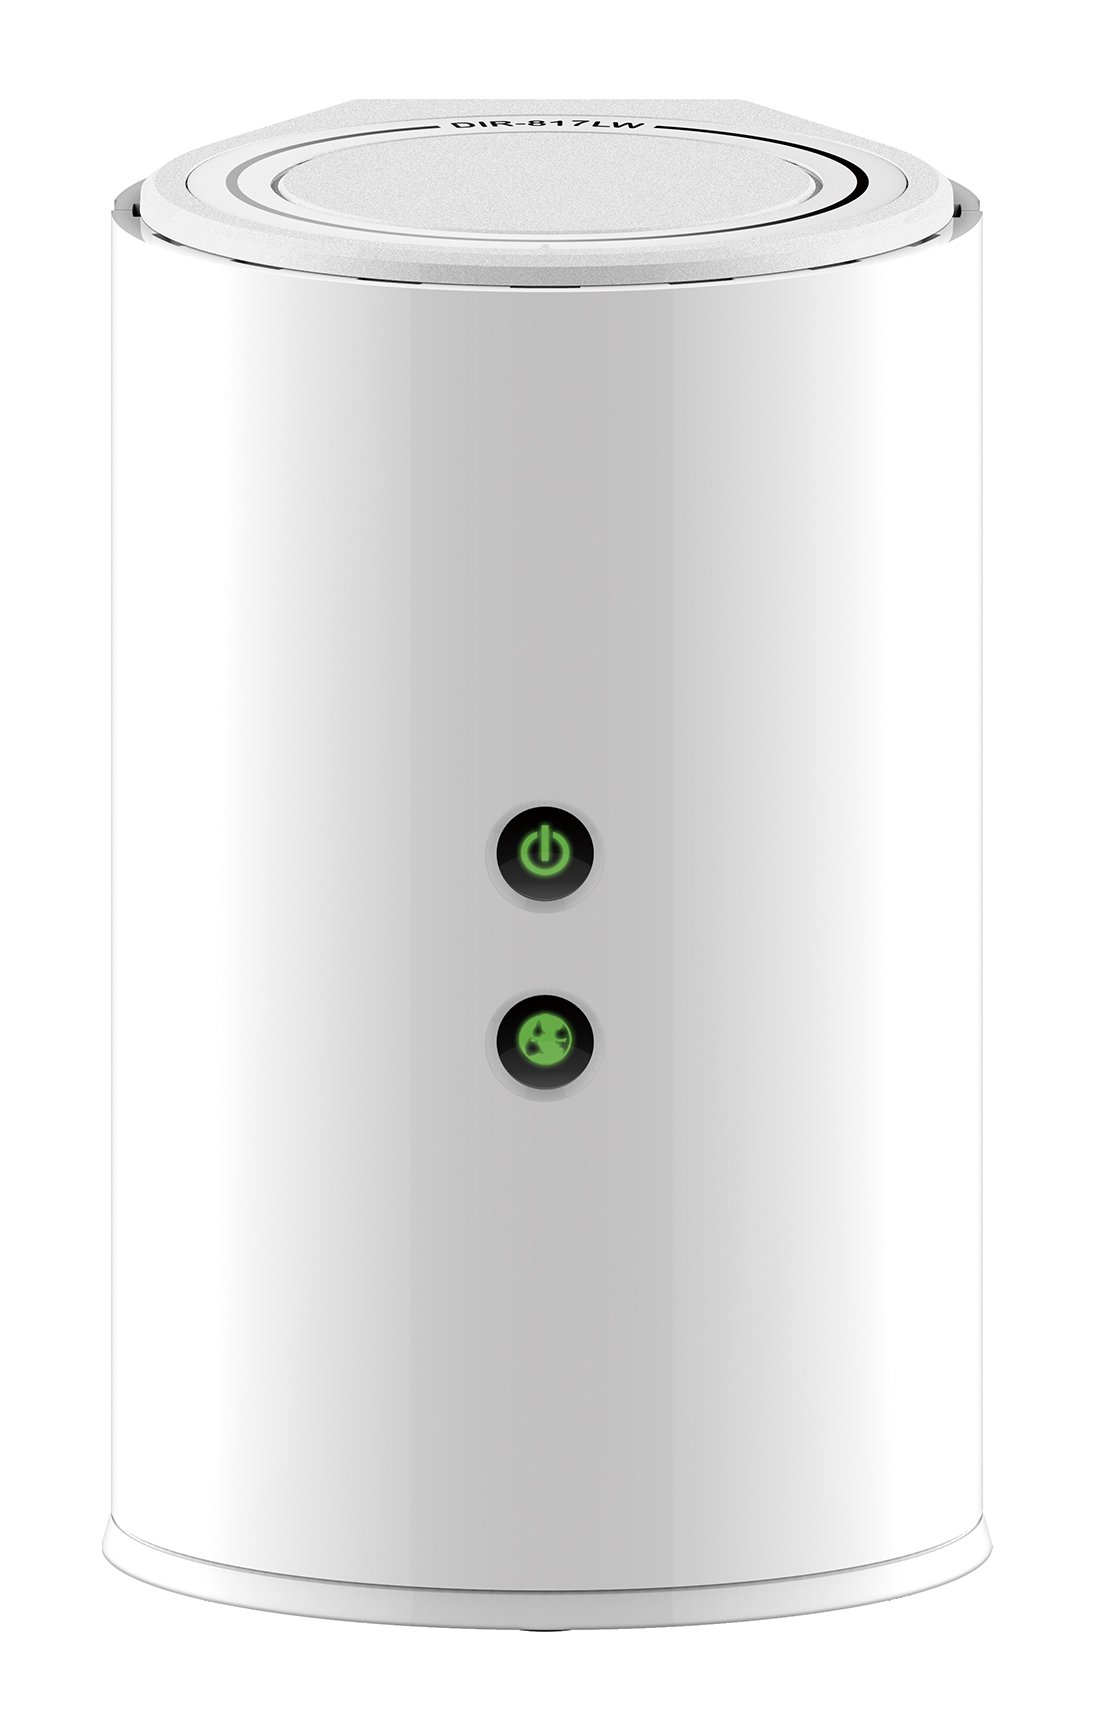 D-Link DIR-817LW Wireless AC750 Dual Band Router (White)